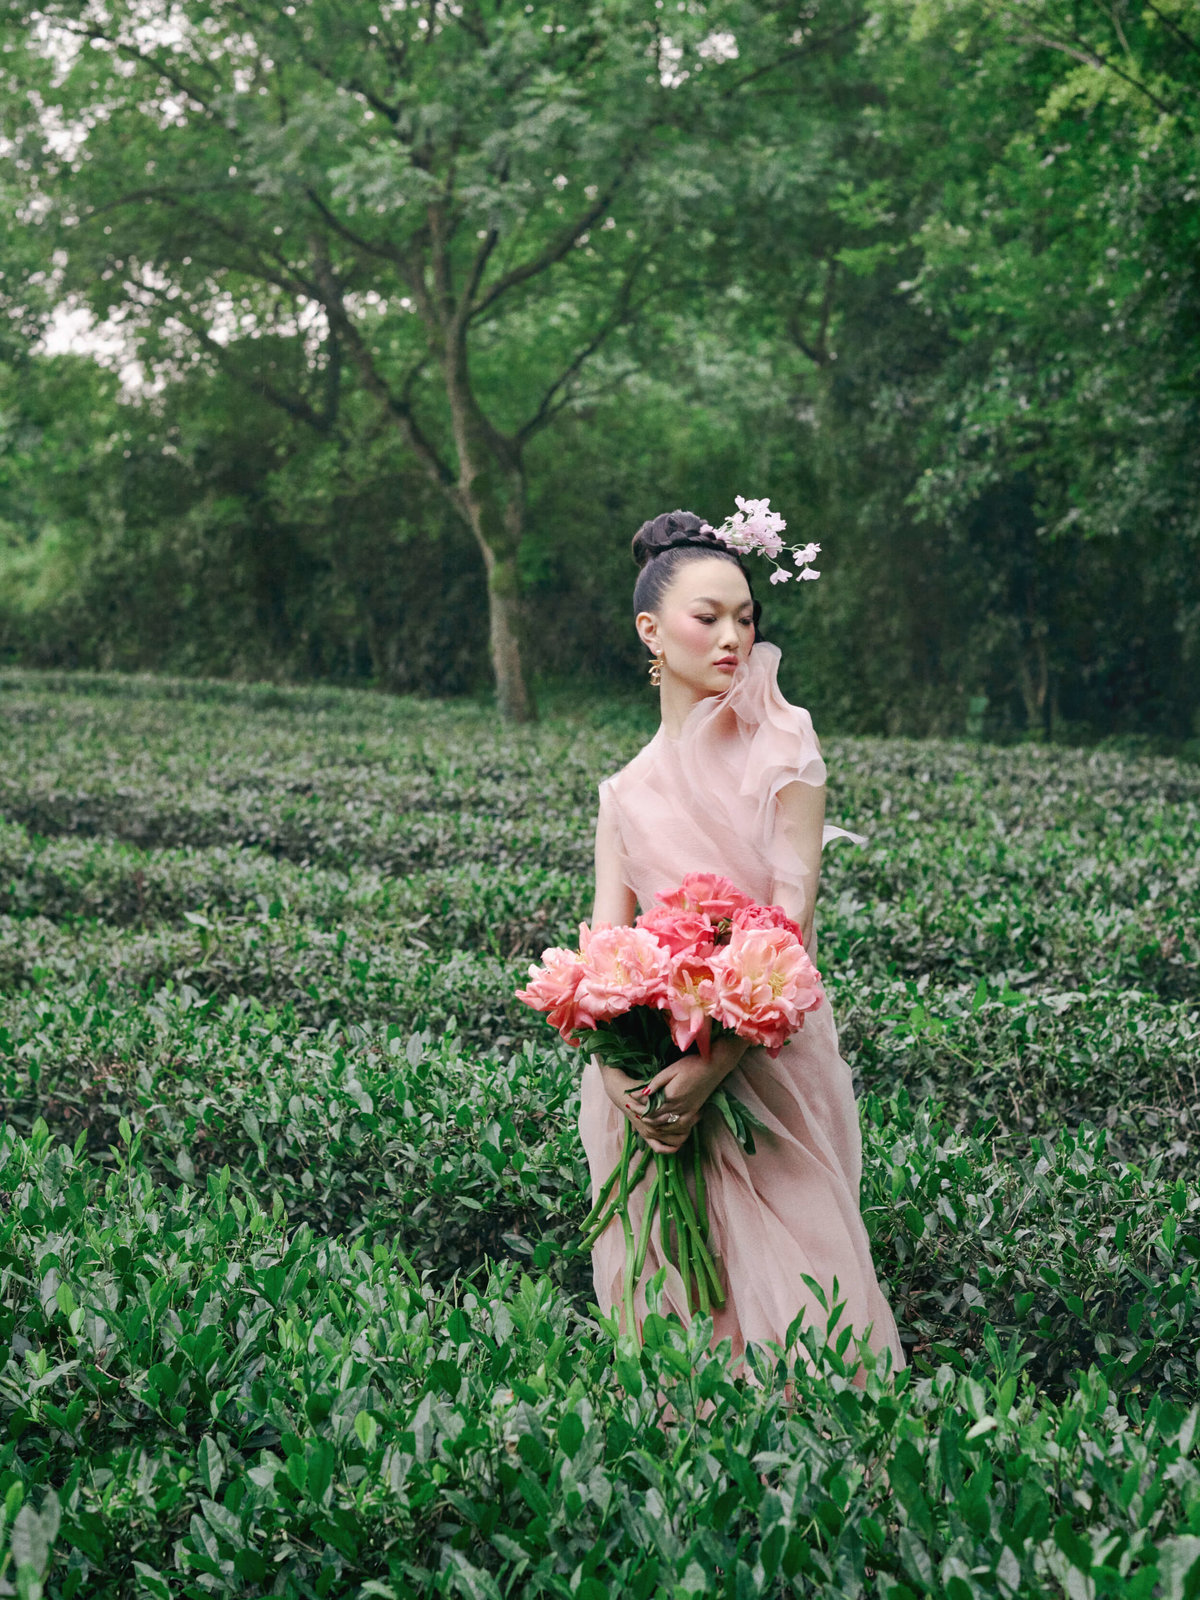 15-ktmerry-HarpersBazaar-hautecouture-JasonWu-Chinese-bride